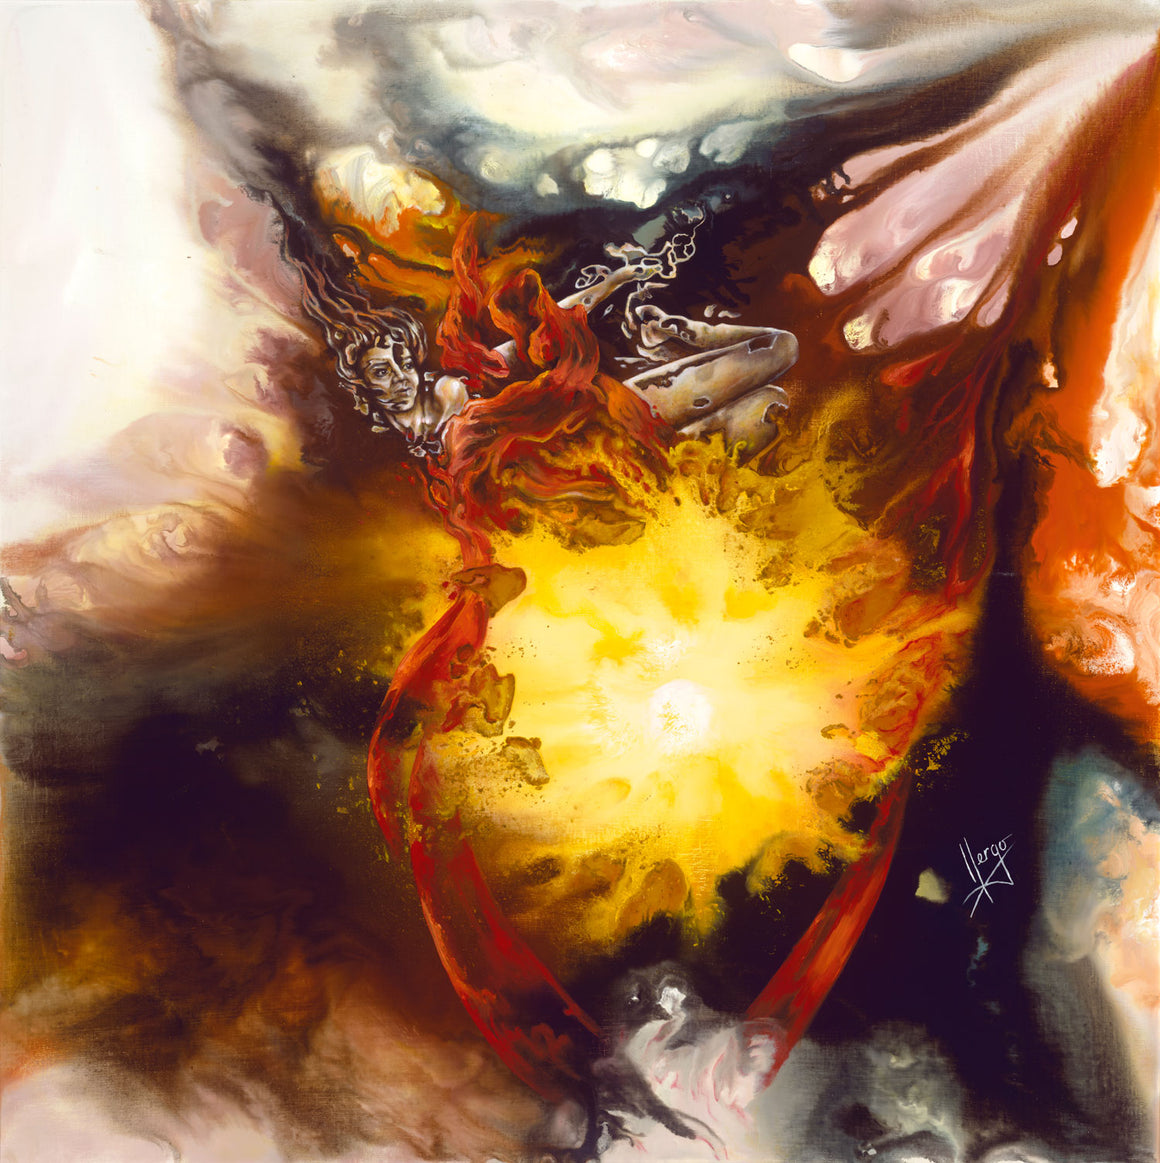 Surreal Abstract Figurative Painting of a Woman Flying around the center of the source of life